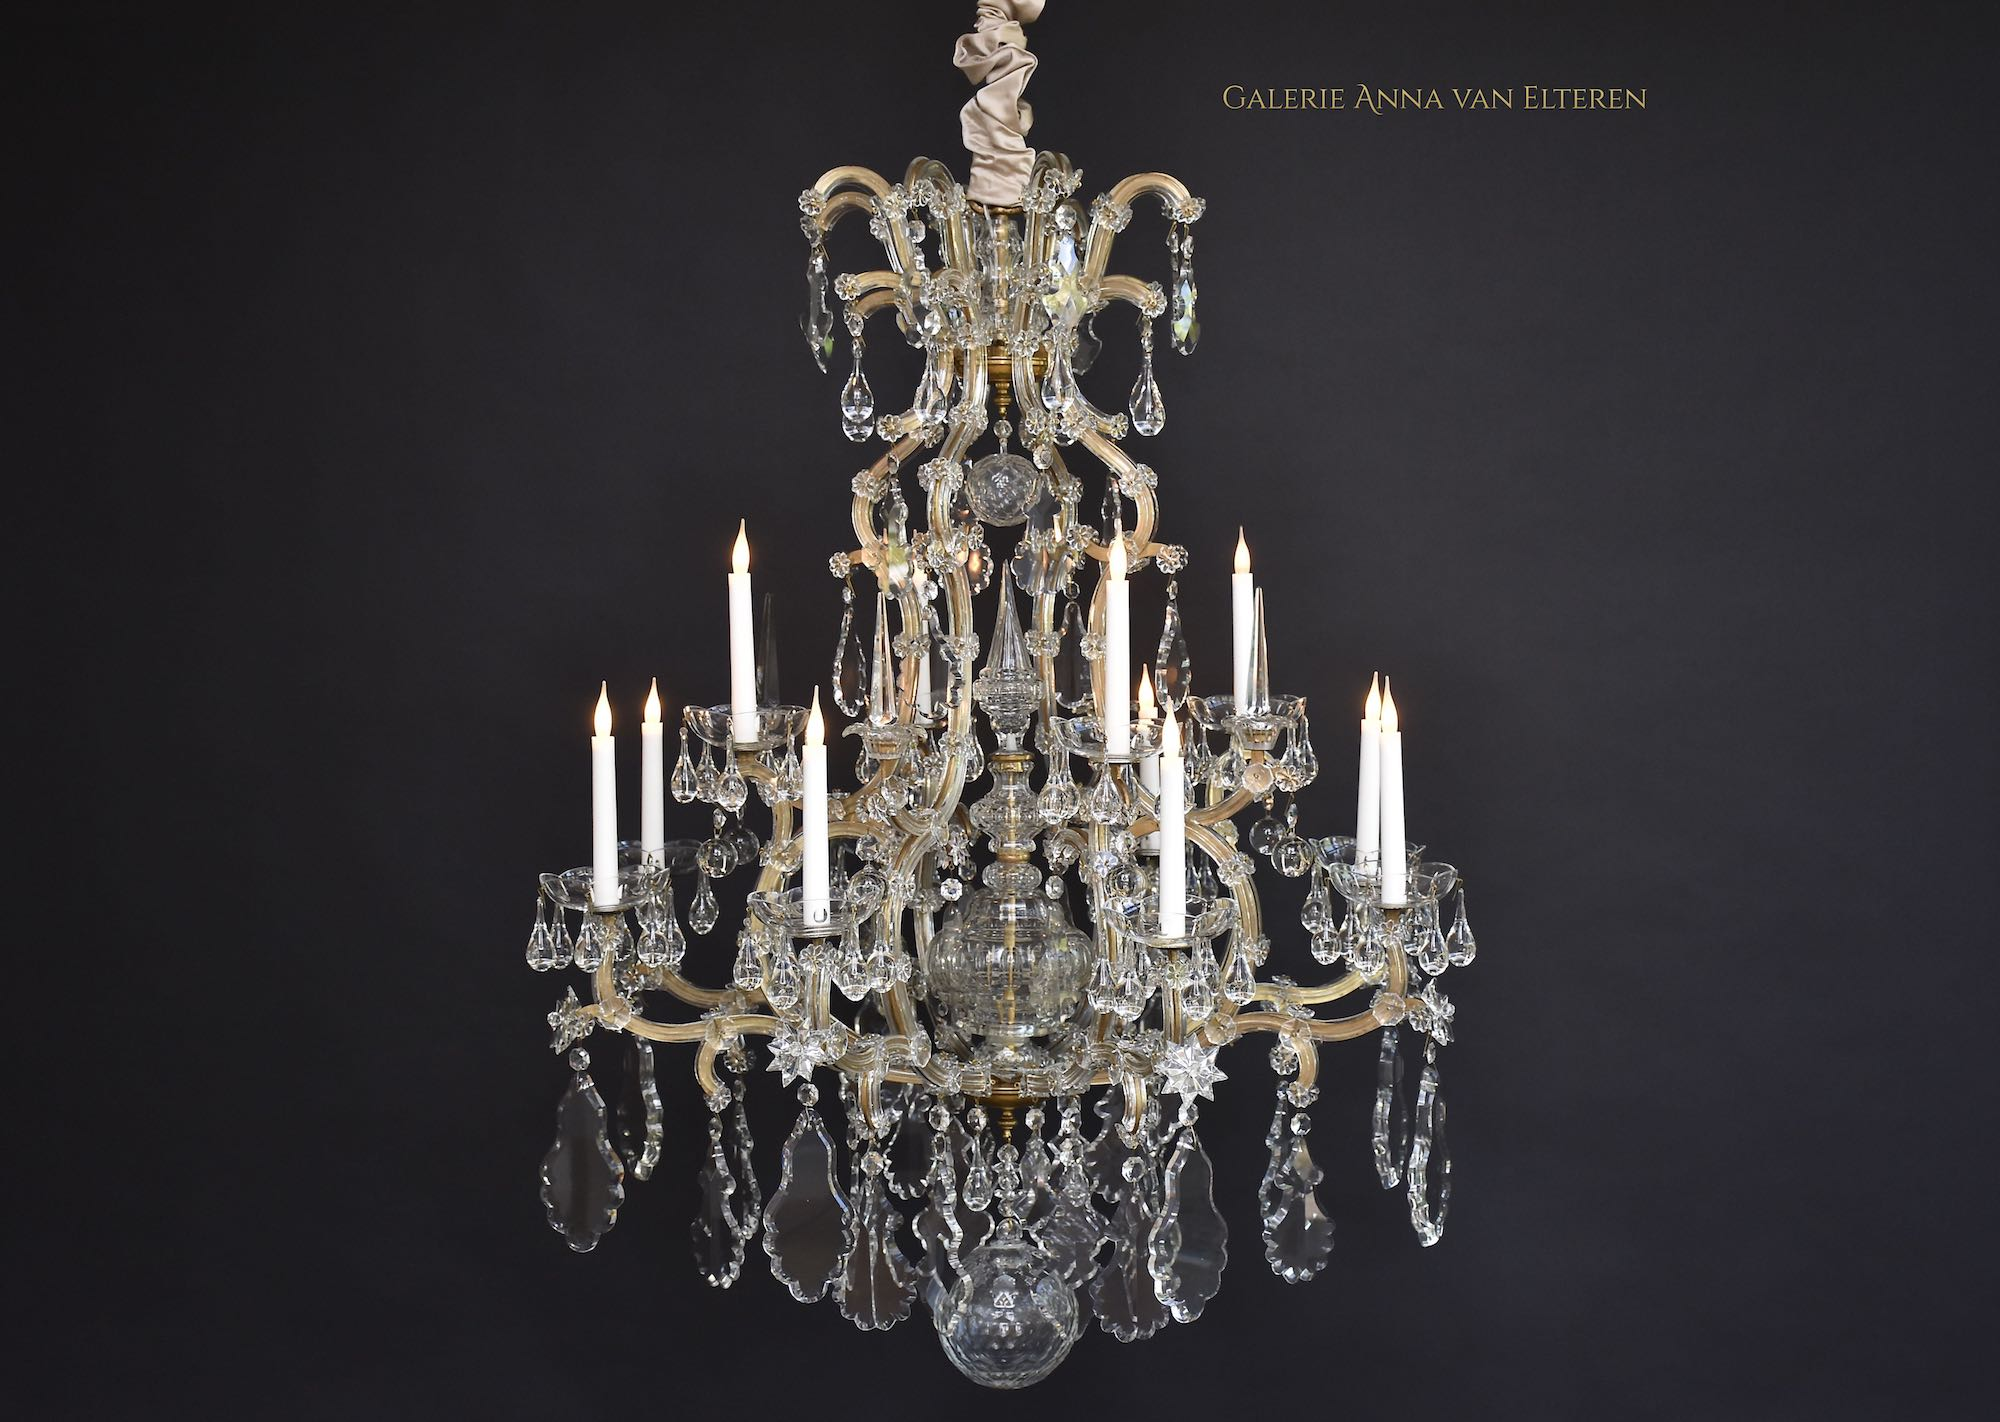 Maria Theresia chandelier